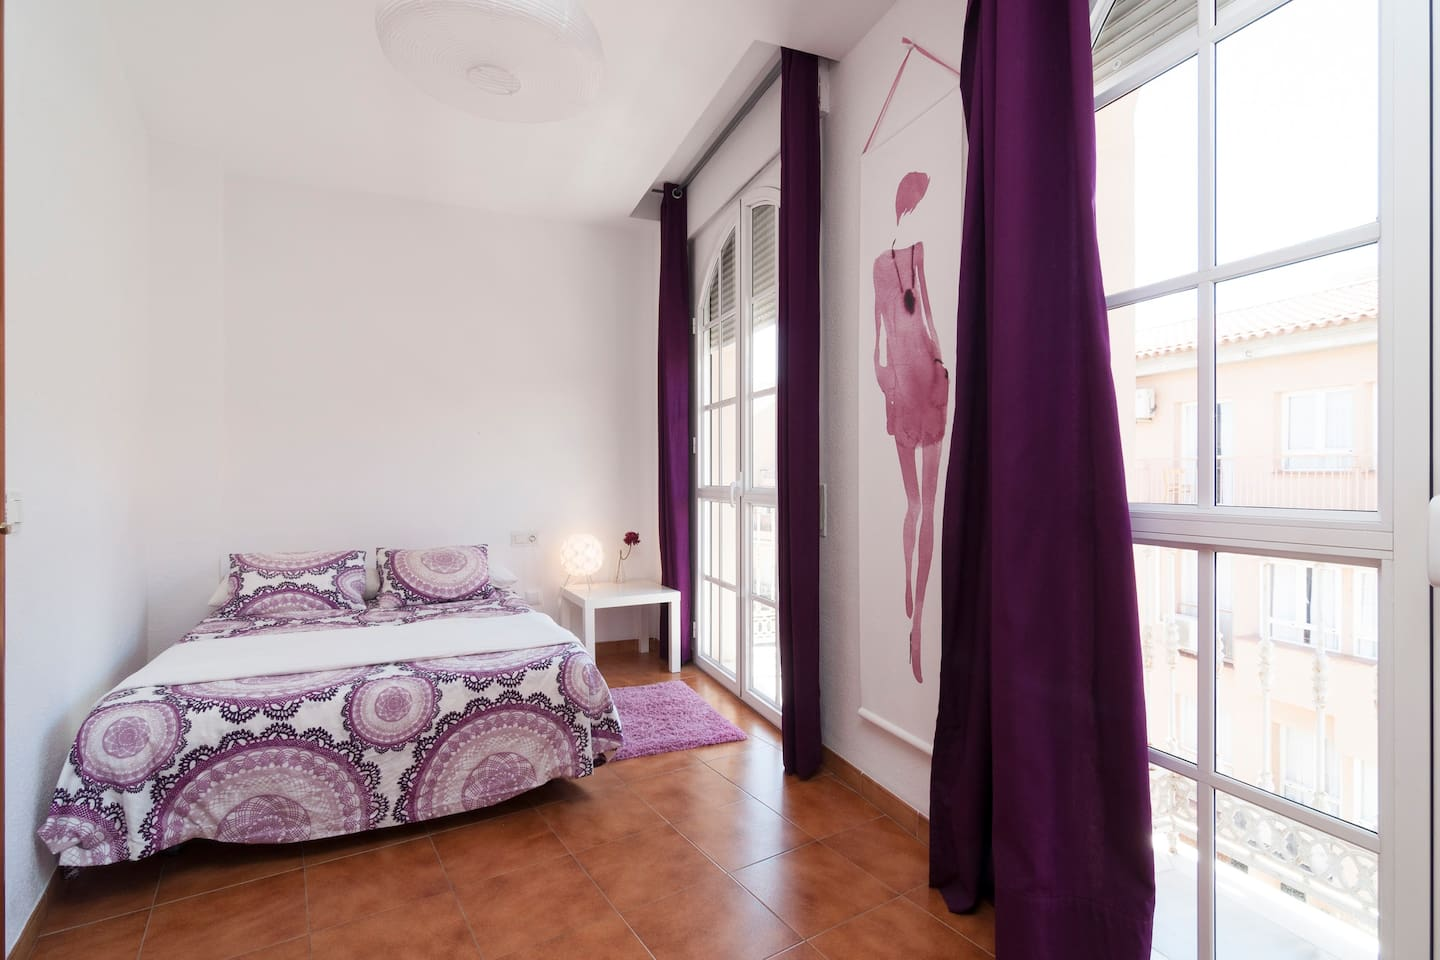 DOUBLE BED WITH TWO BALCONY